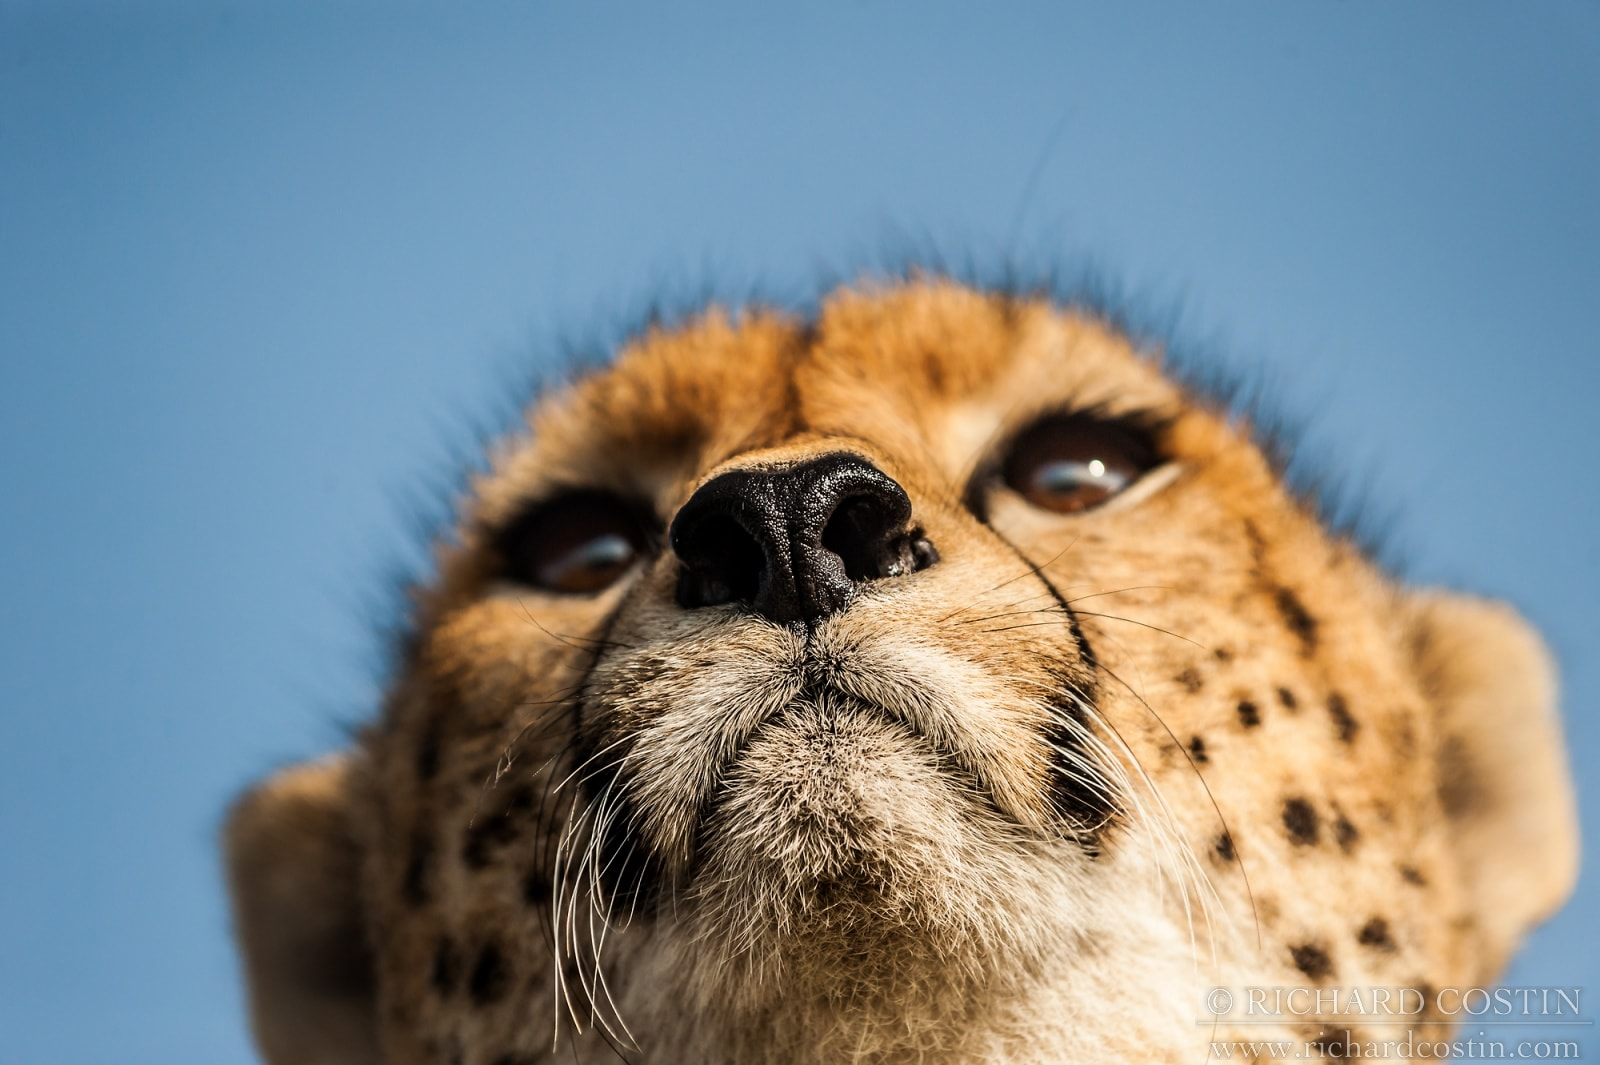 Cheetah photograph taken against the sky on photography class with Richard Costin